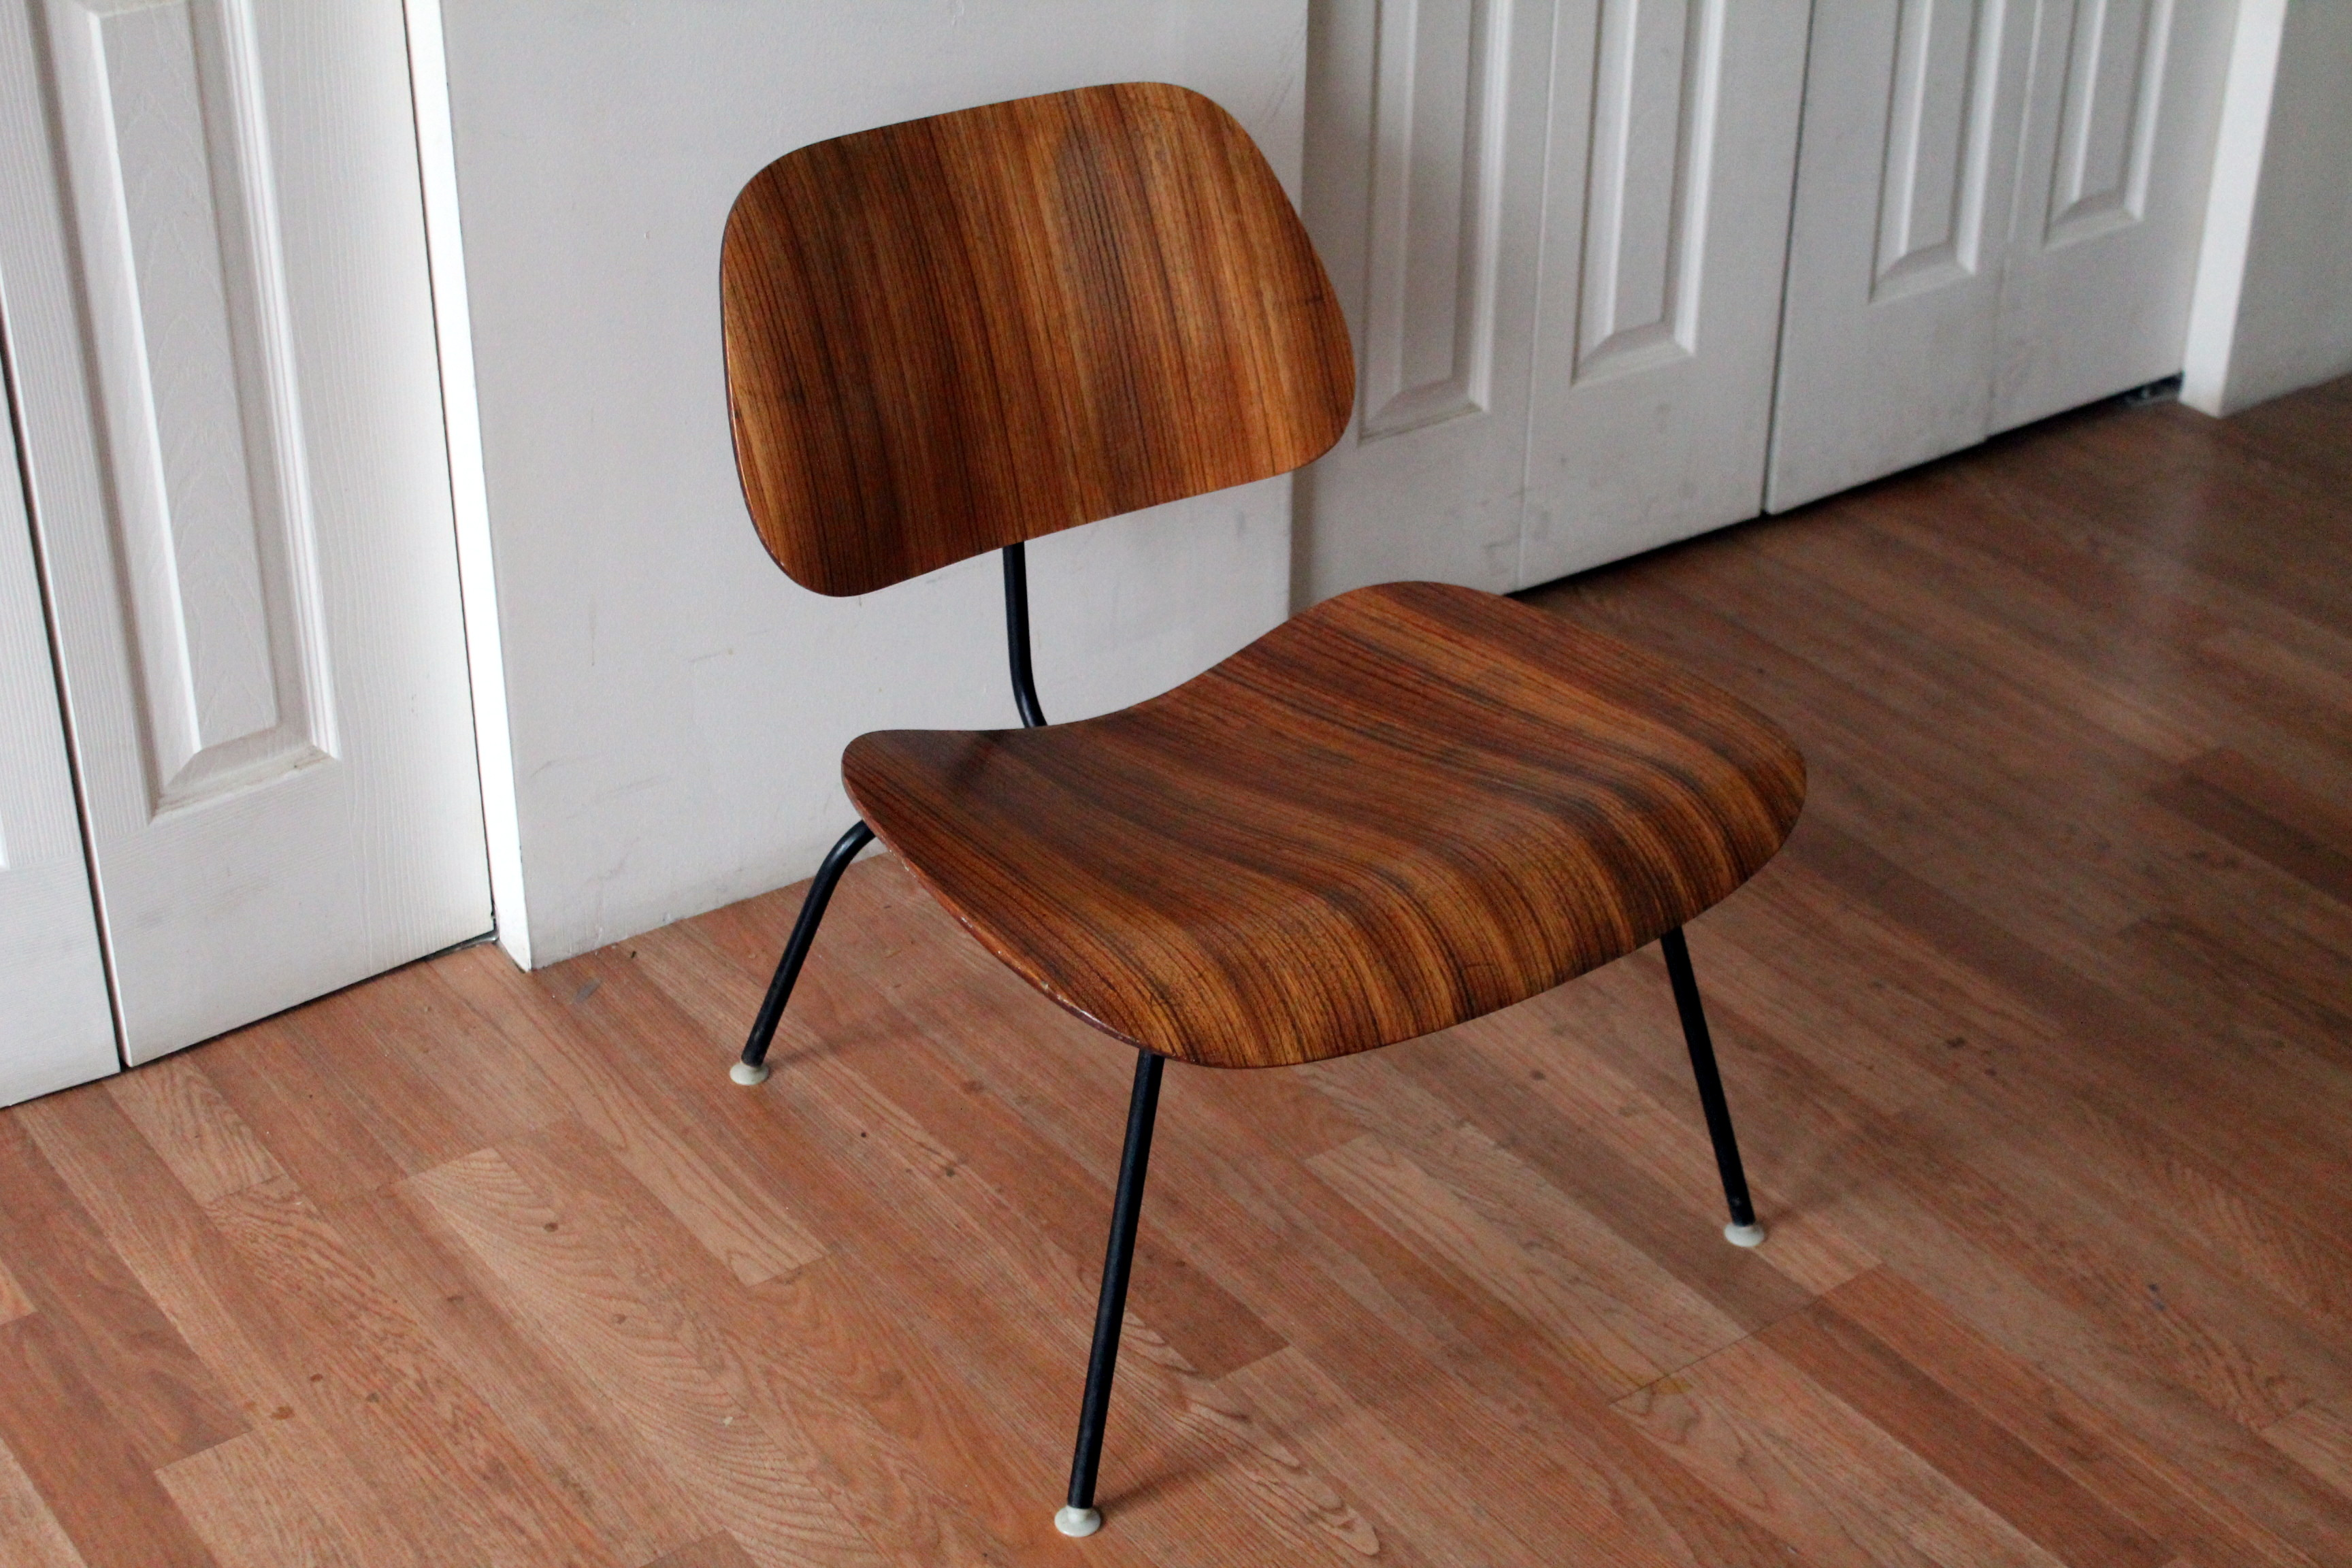 Eames LCM Zebra Wood Lounge Chair